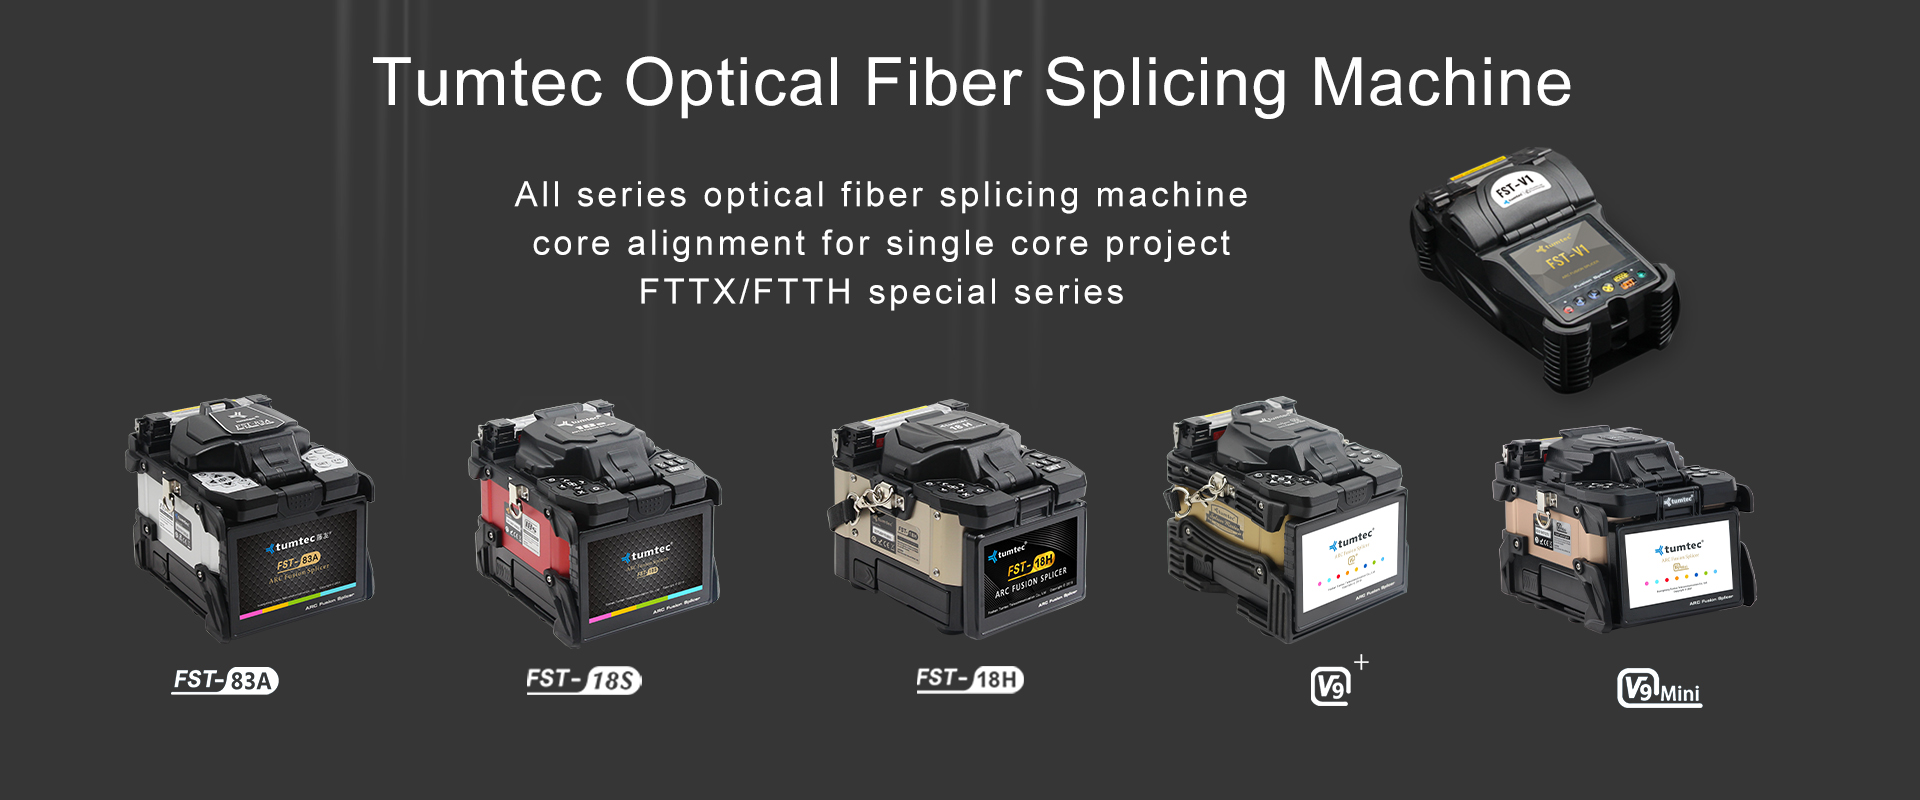 Tumtec Optical Fiber Splicing Machine